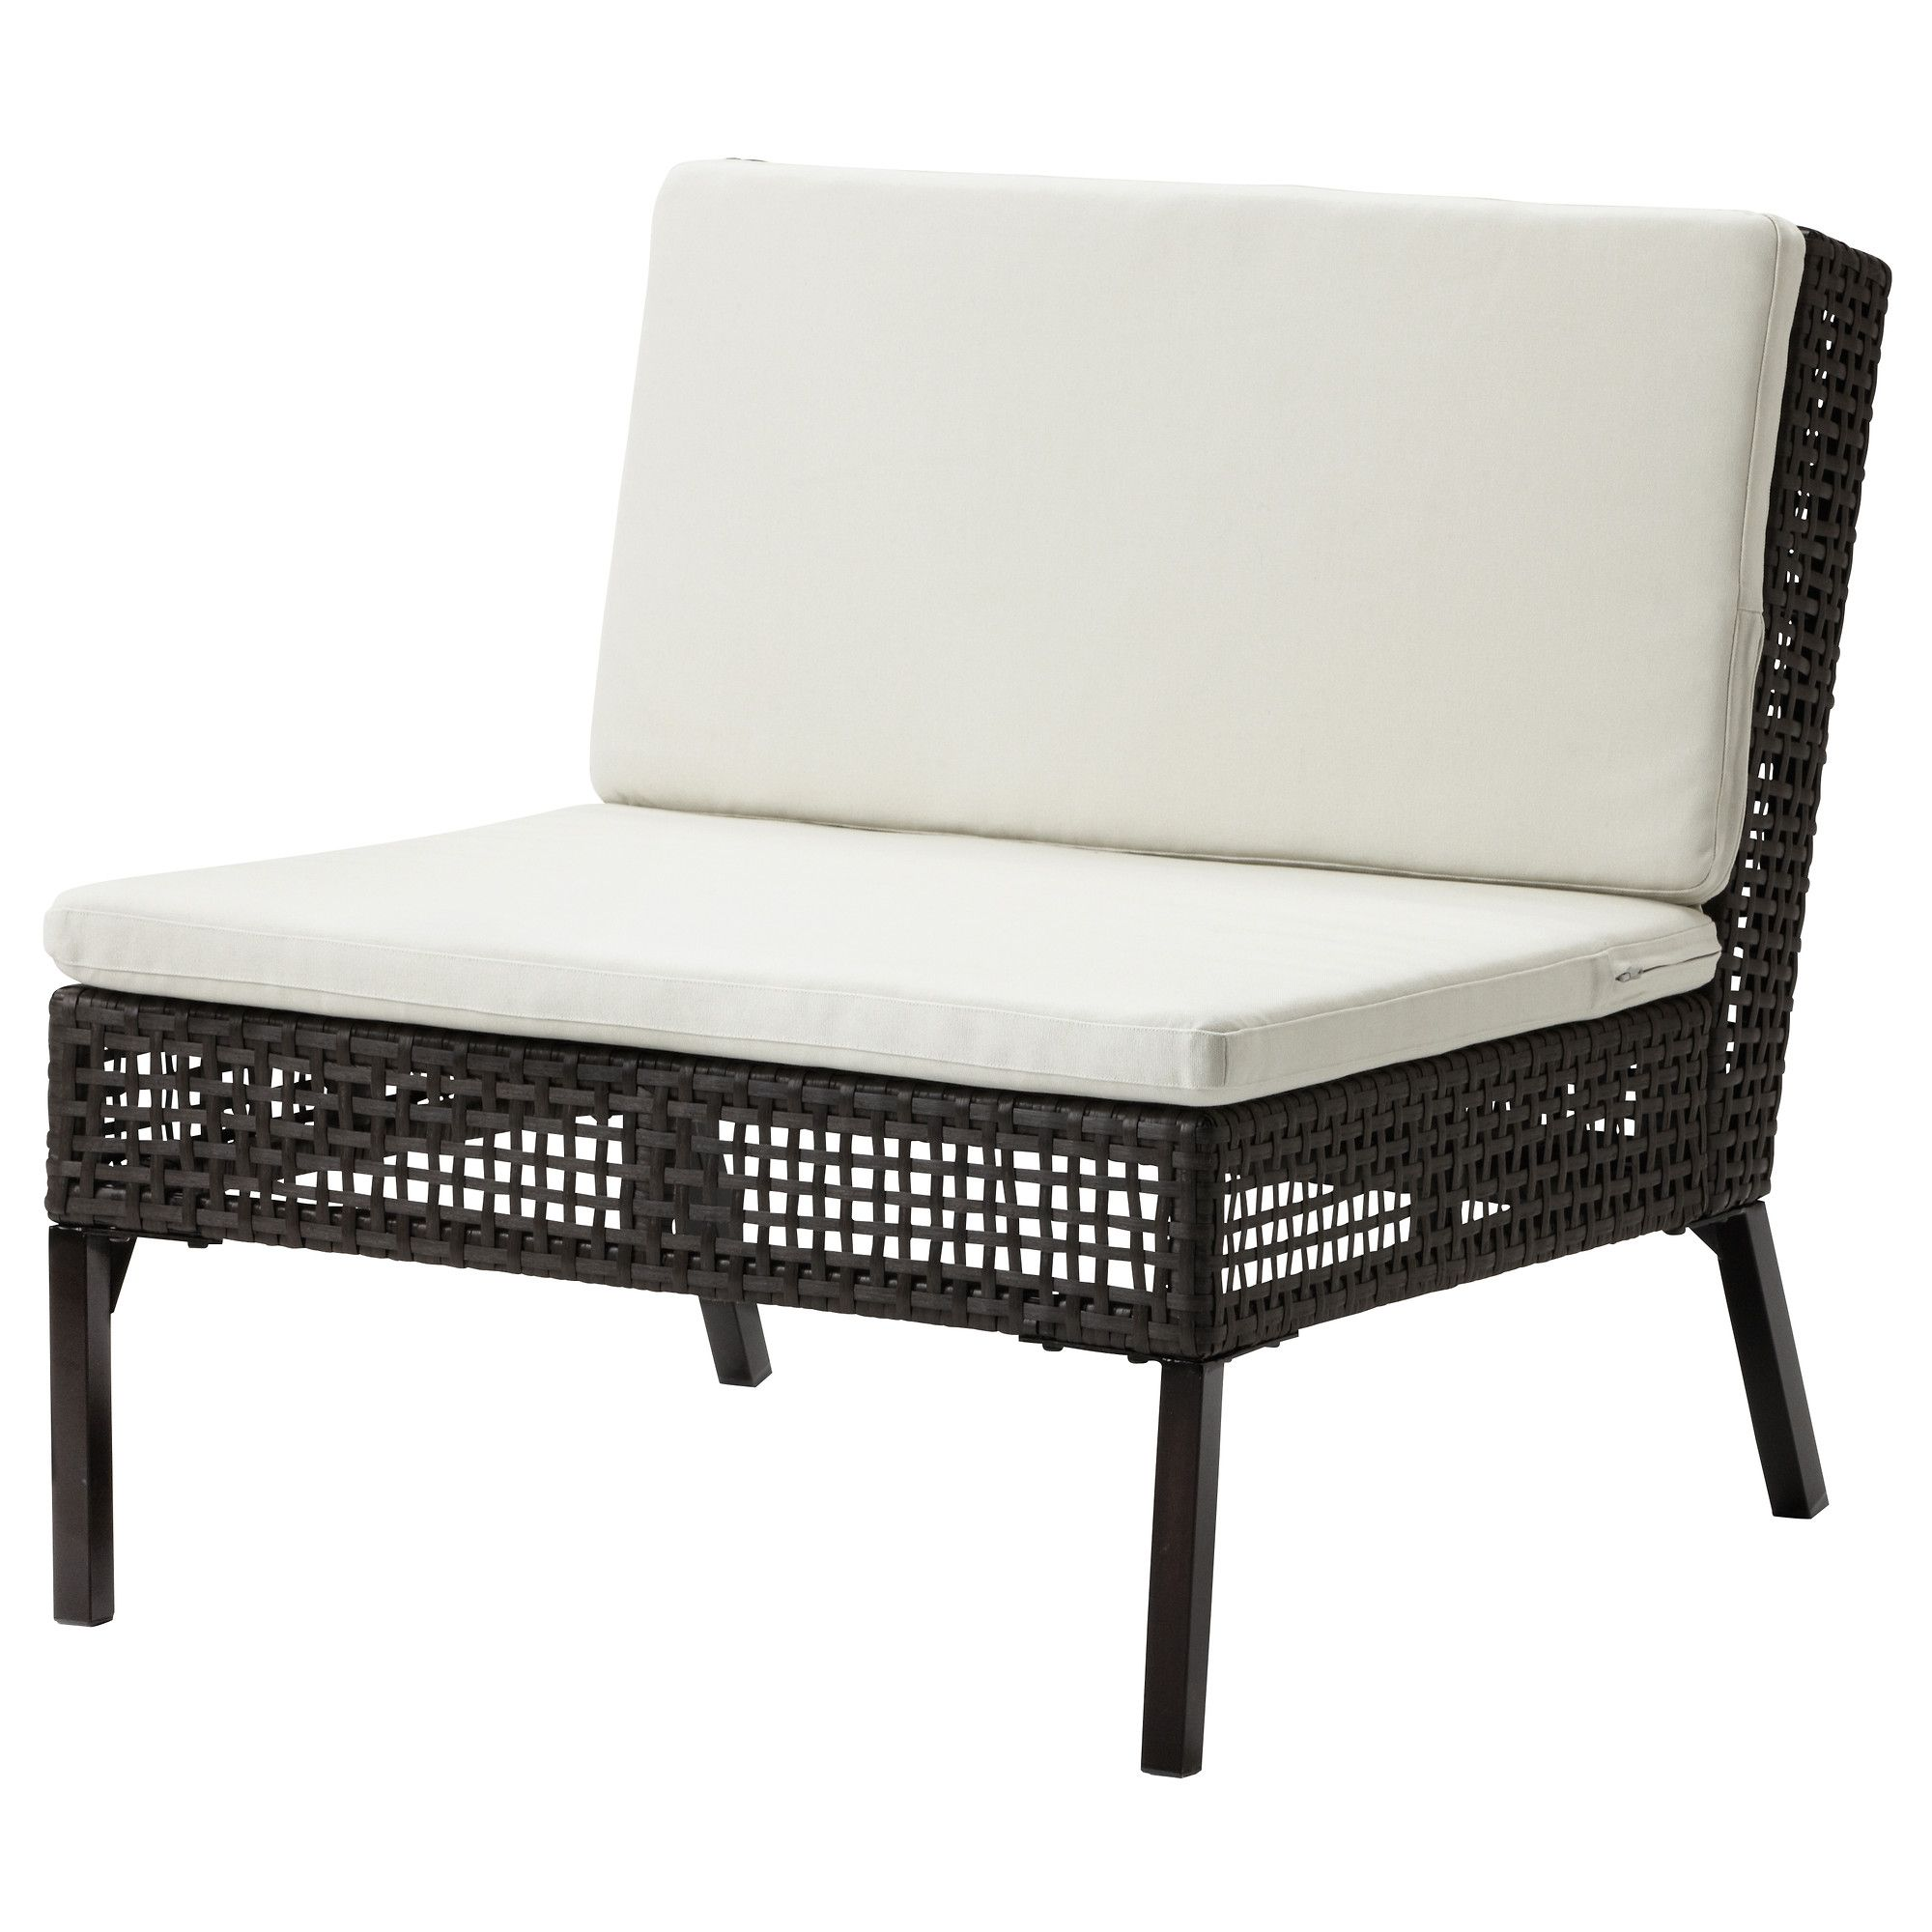 Outdoor Lounge · AMMERÖ One Seat Section With Cushion   IKEA